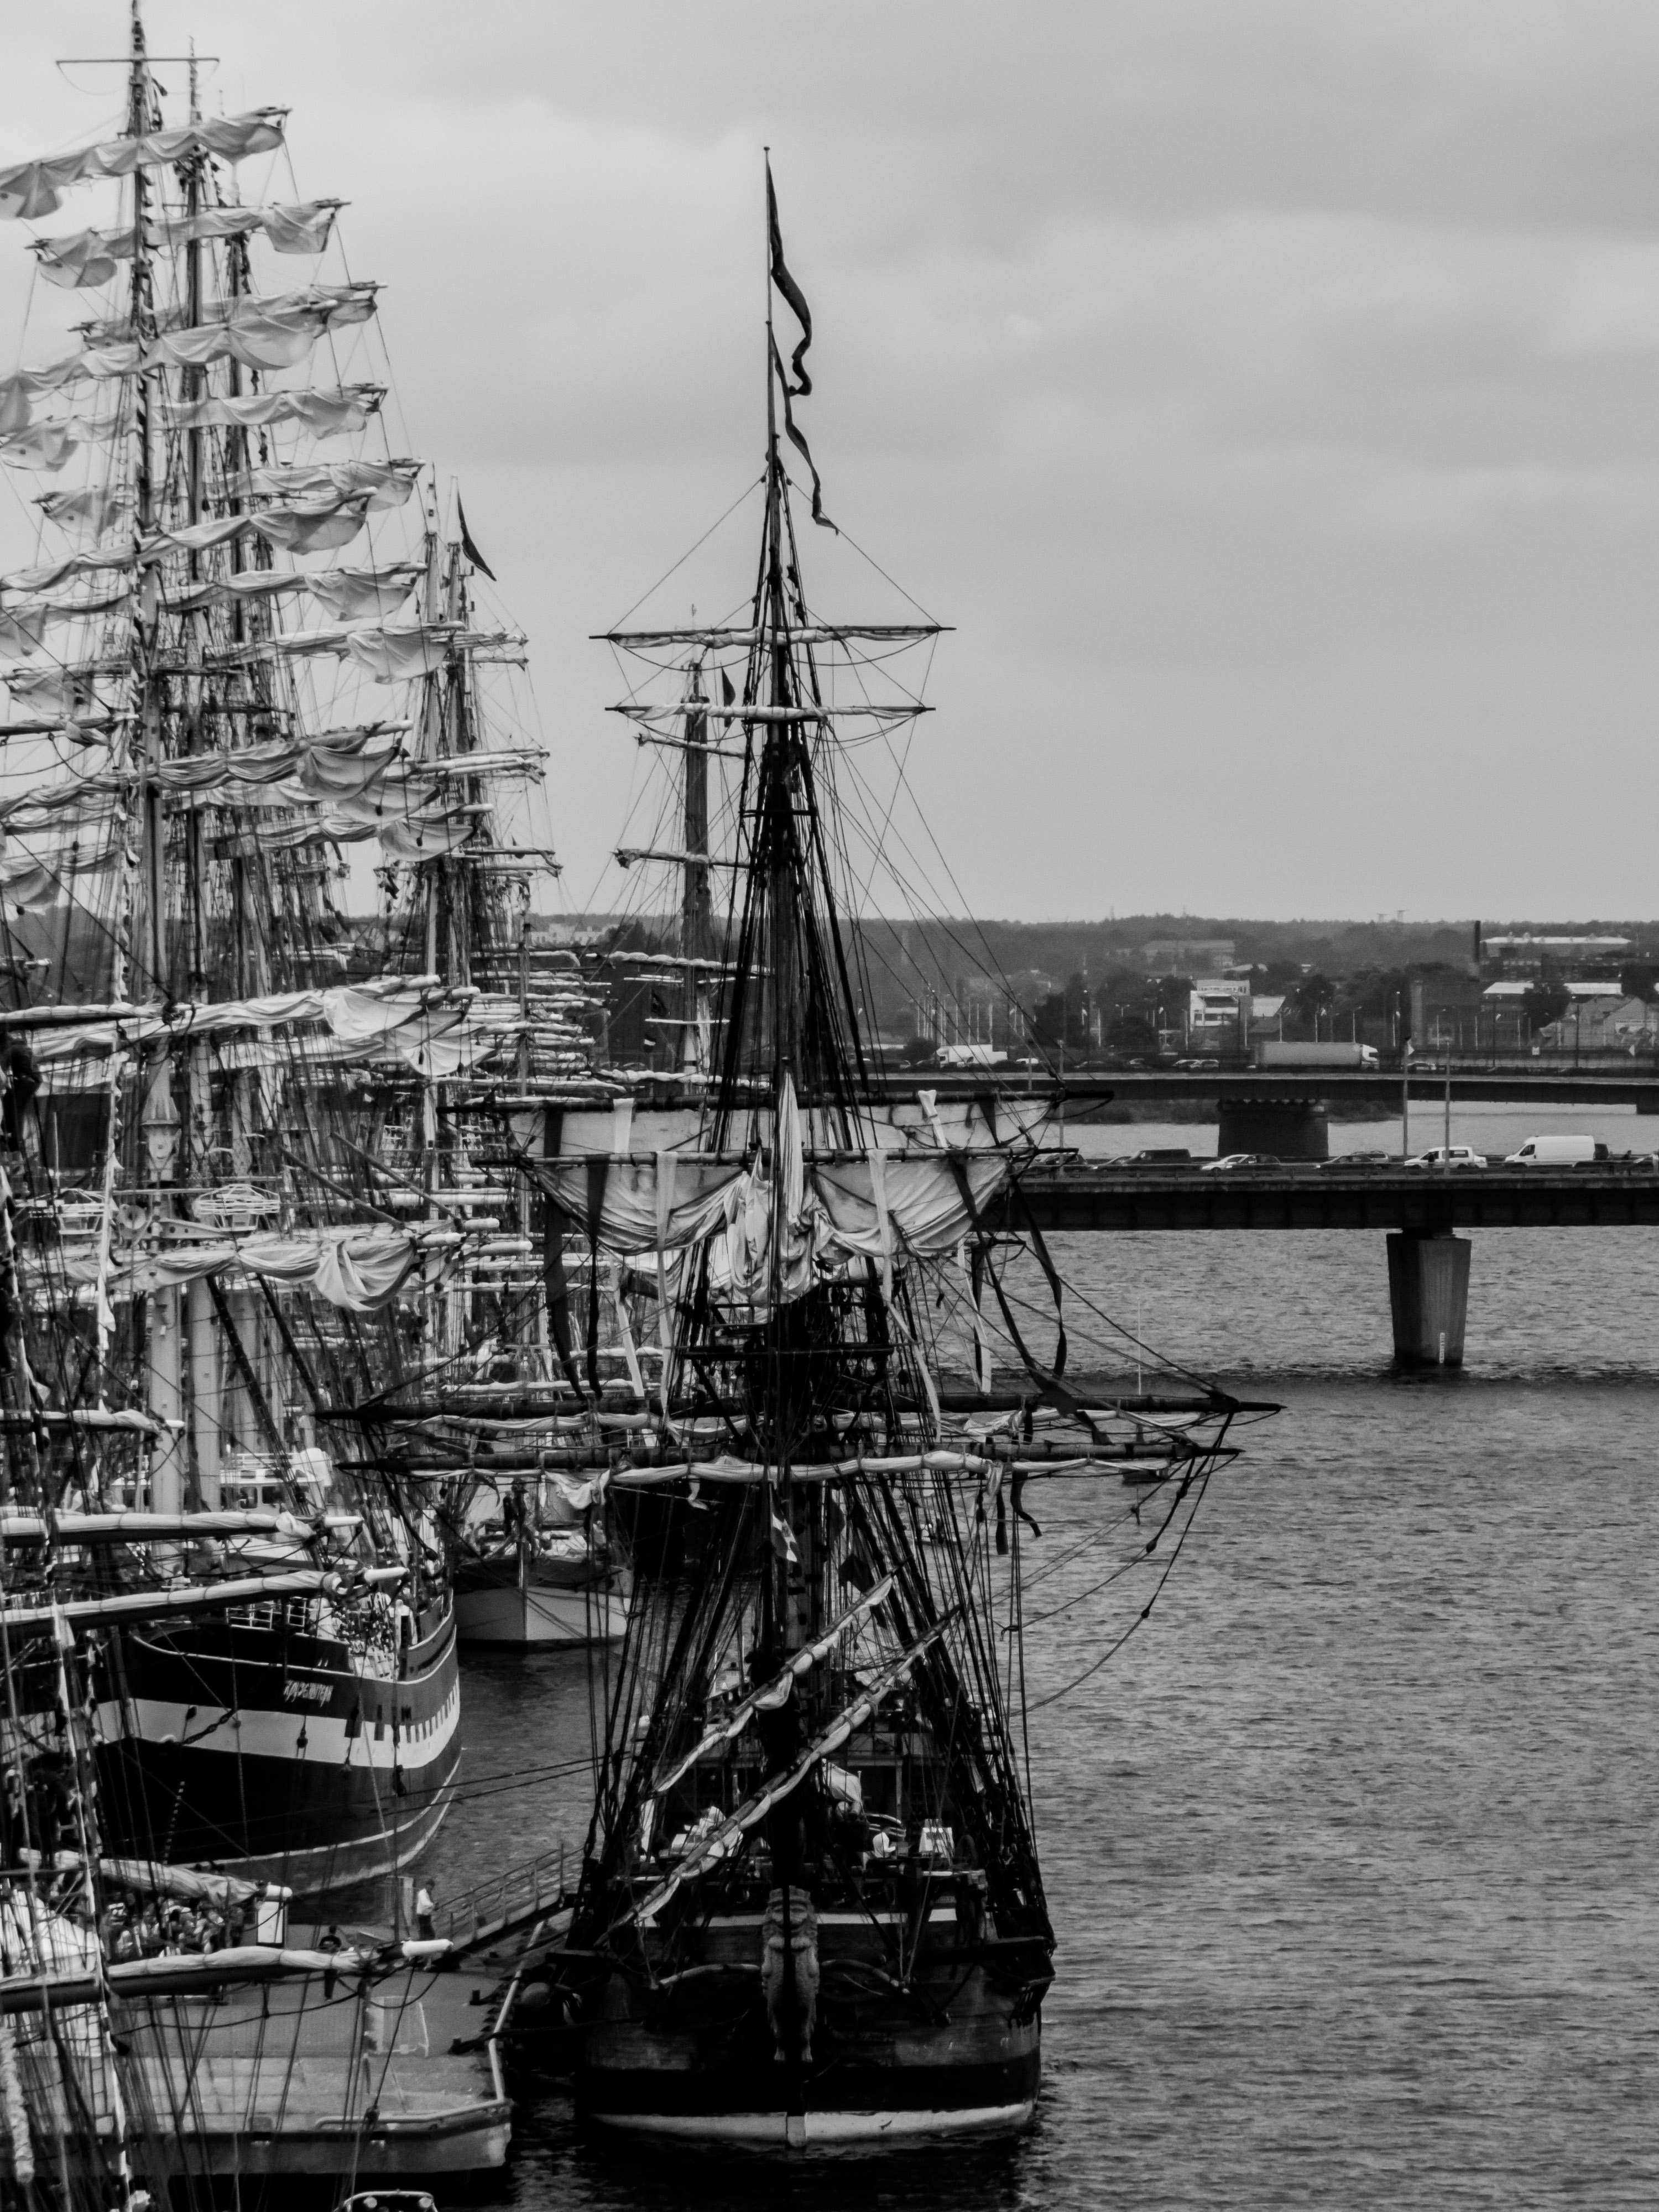 Sailing ships masts, 2013, River, Vessel, Theme, HQ Photo